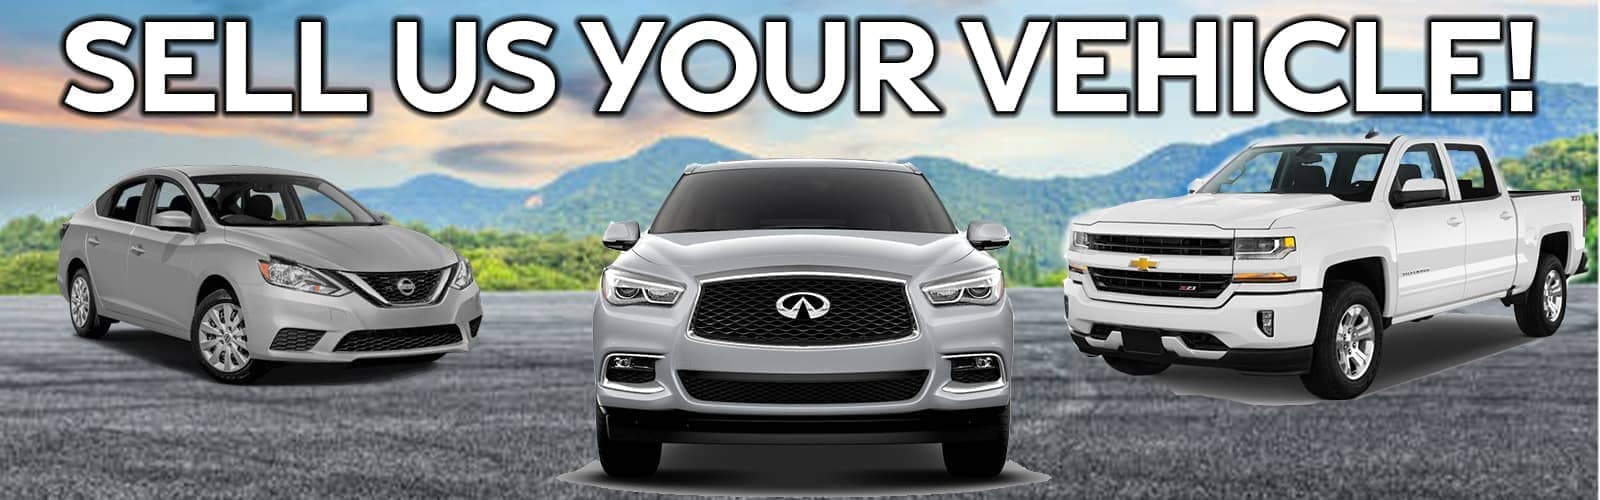 sell us your vehicle banner